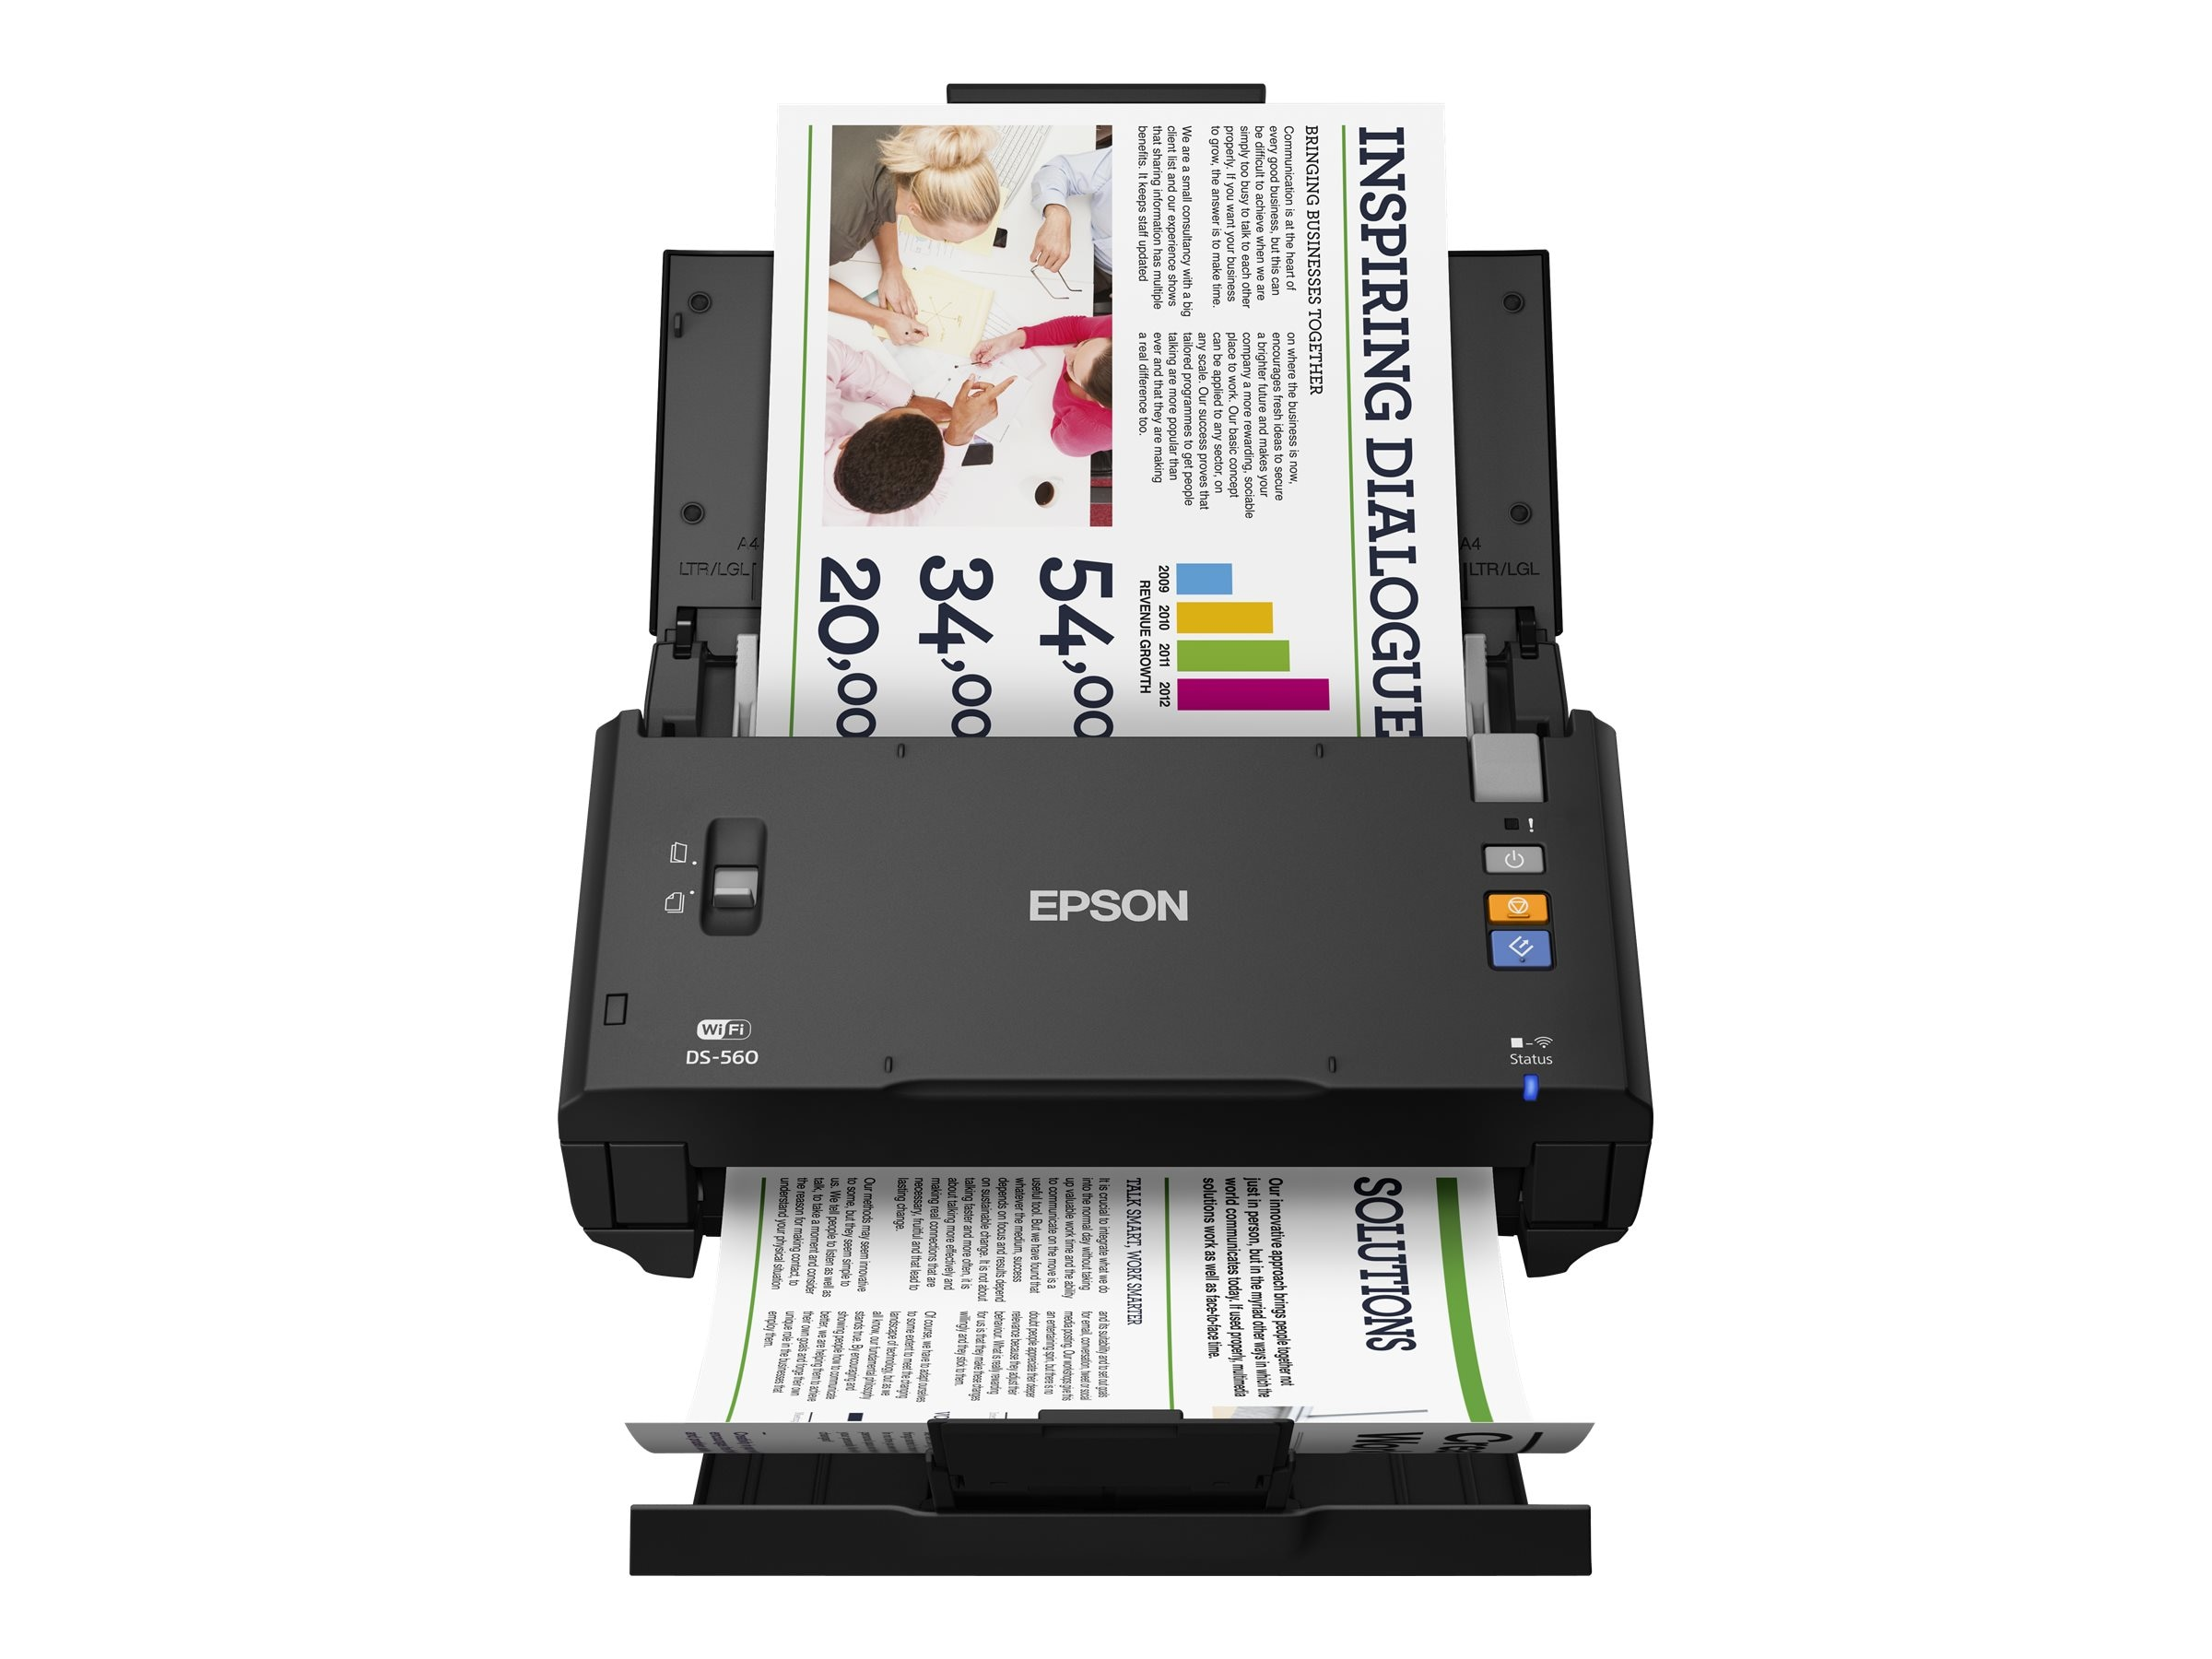 Epson WorkForce DS-560 26ppm 50-page ADF Wireless Scanner